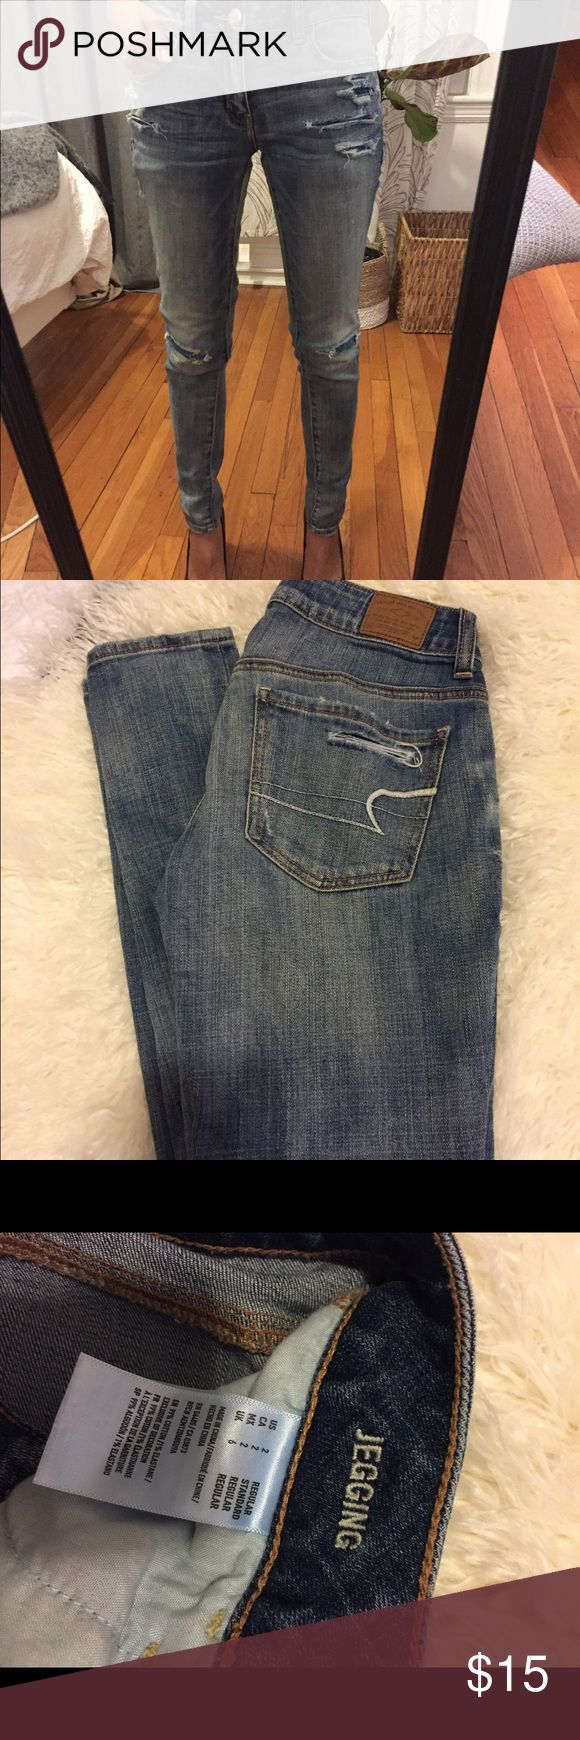 American Eagle Outfitters distressed jeans American Eagle Outfitters distressed light wash denim with cute lace patchwork detailing. American Eagle Outfitters Jeans Skinny